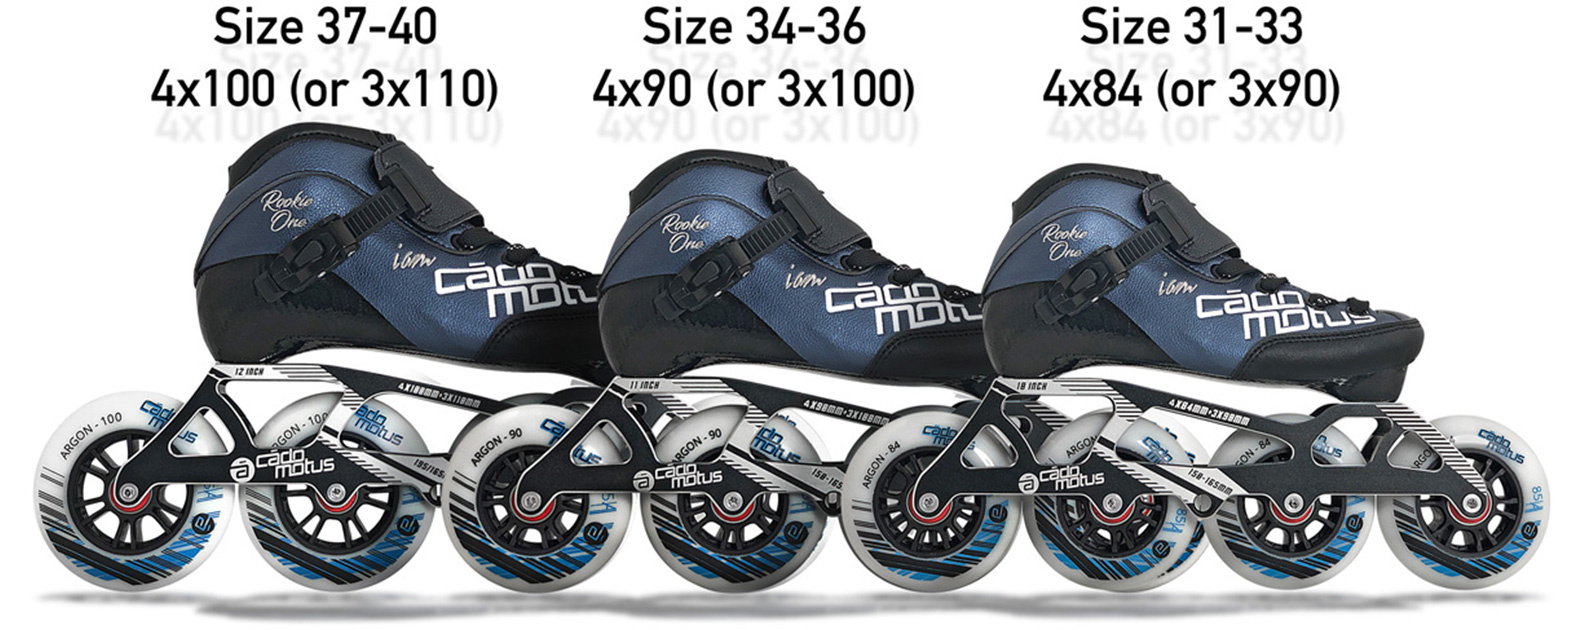 This inline speed skate frame is designed to take 4 wheels or 3 bigger wheels in one frame.